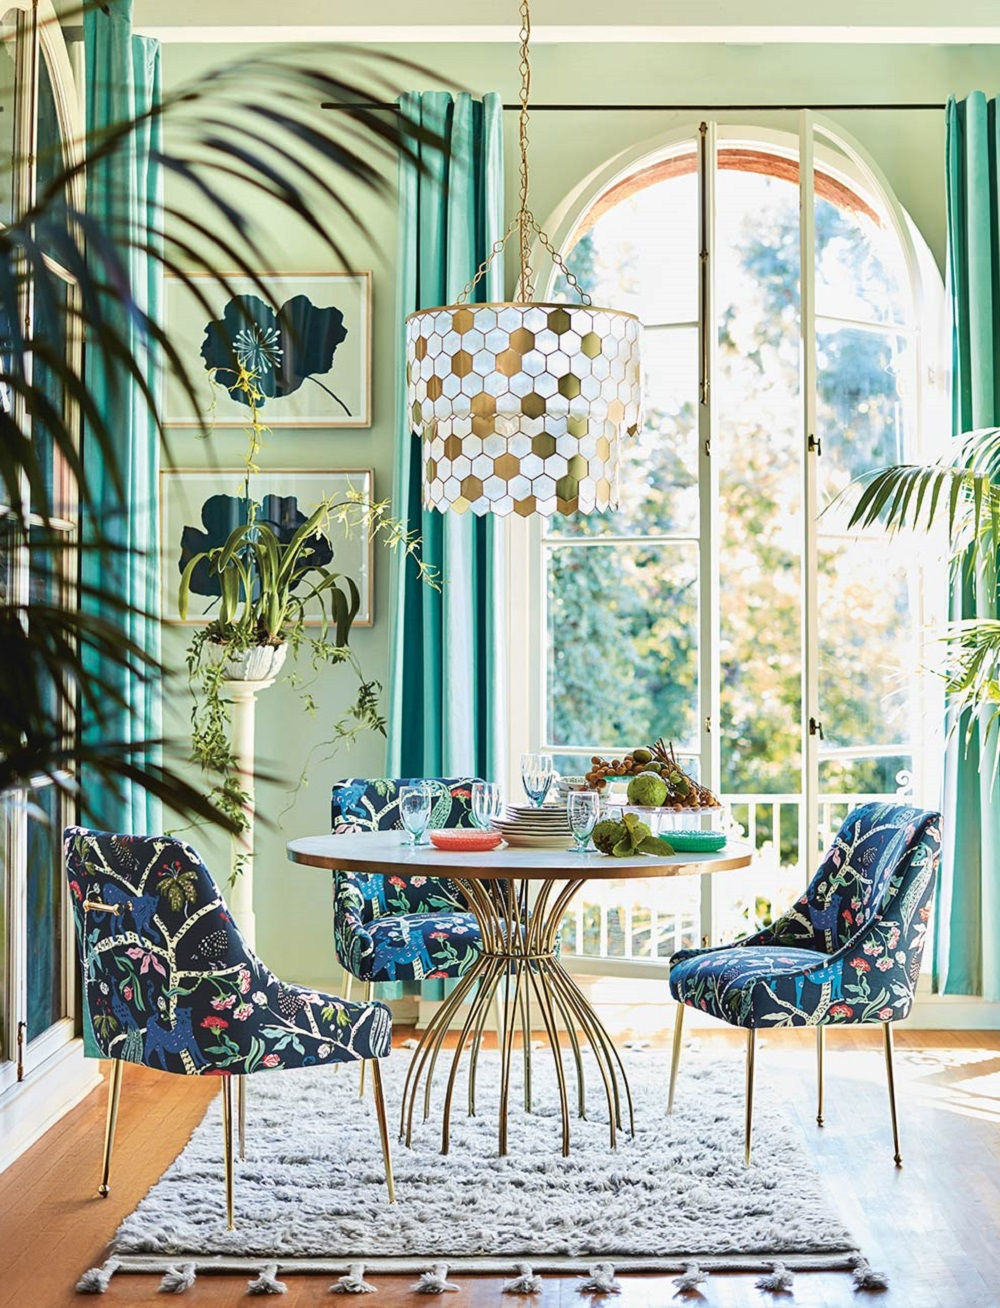 The Nordroom - Anthropologie Spring 2019 Collection